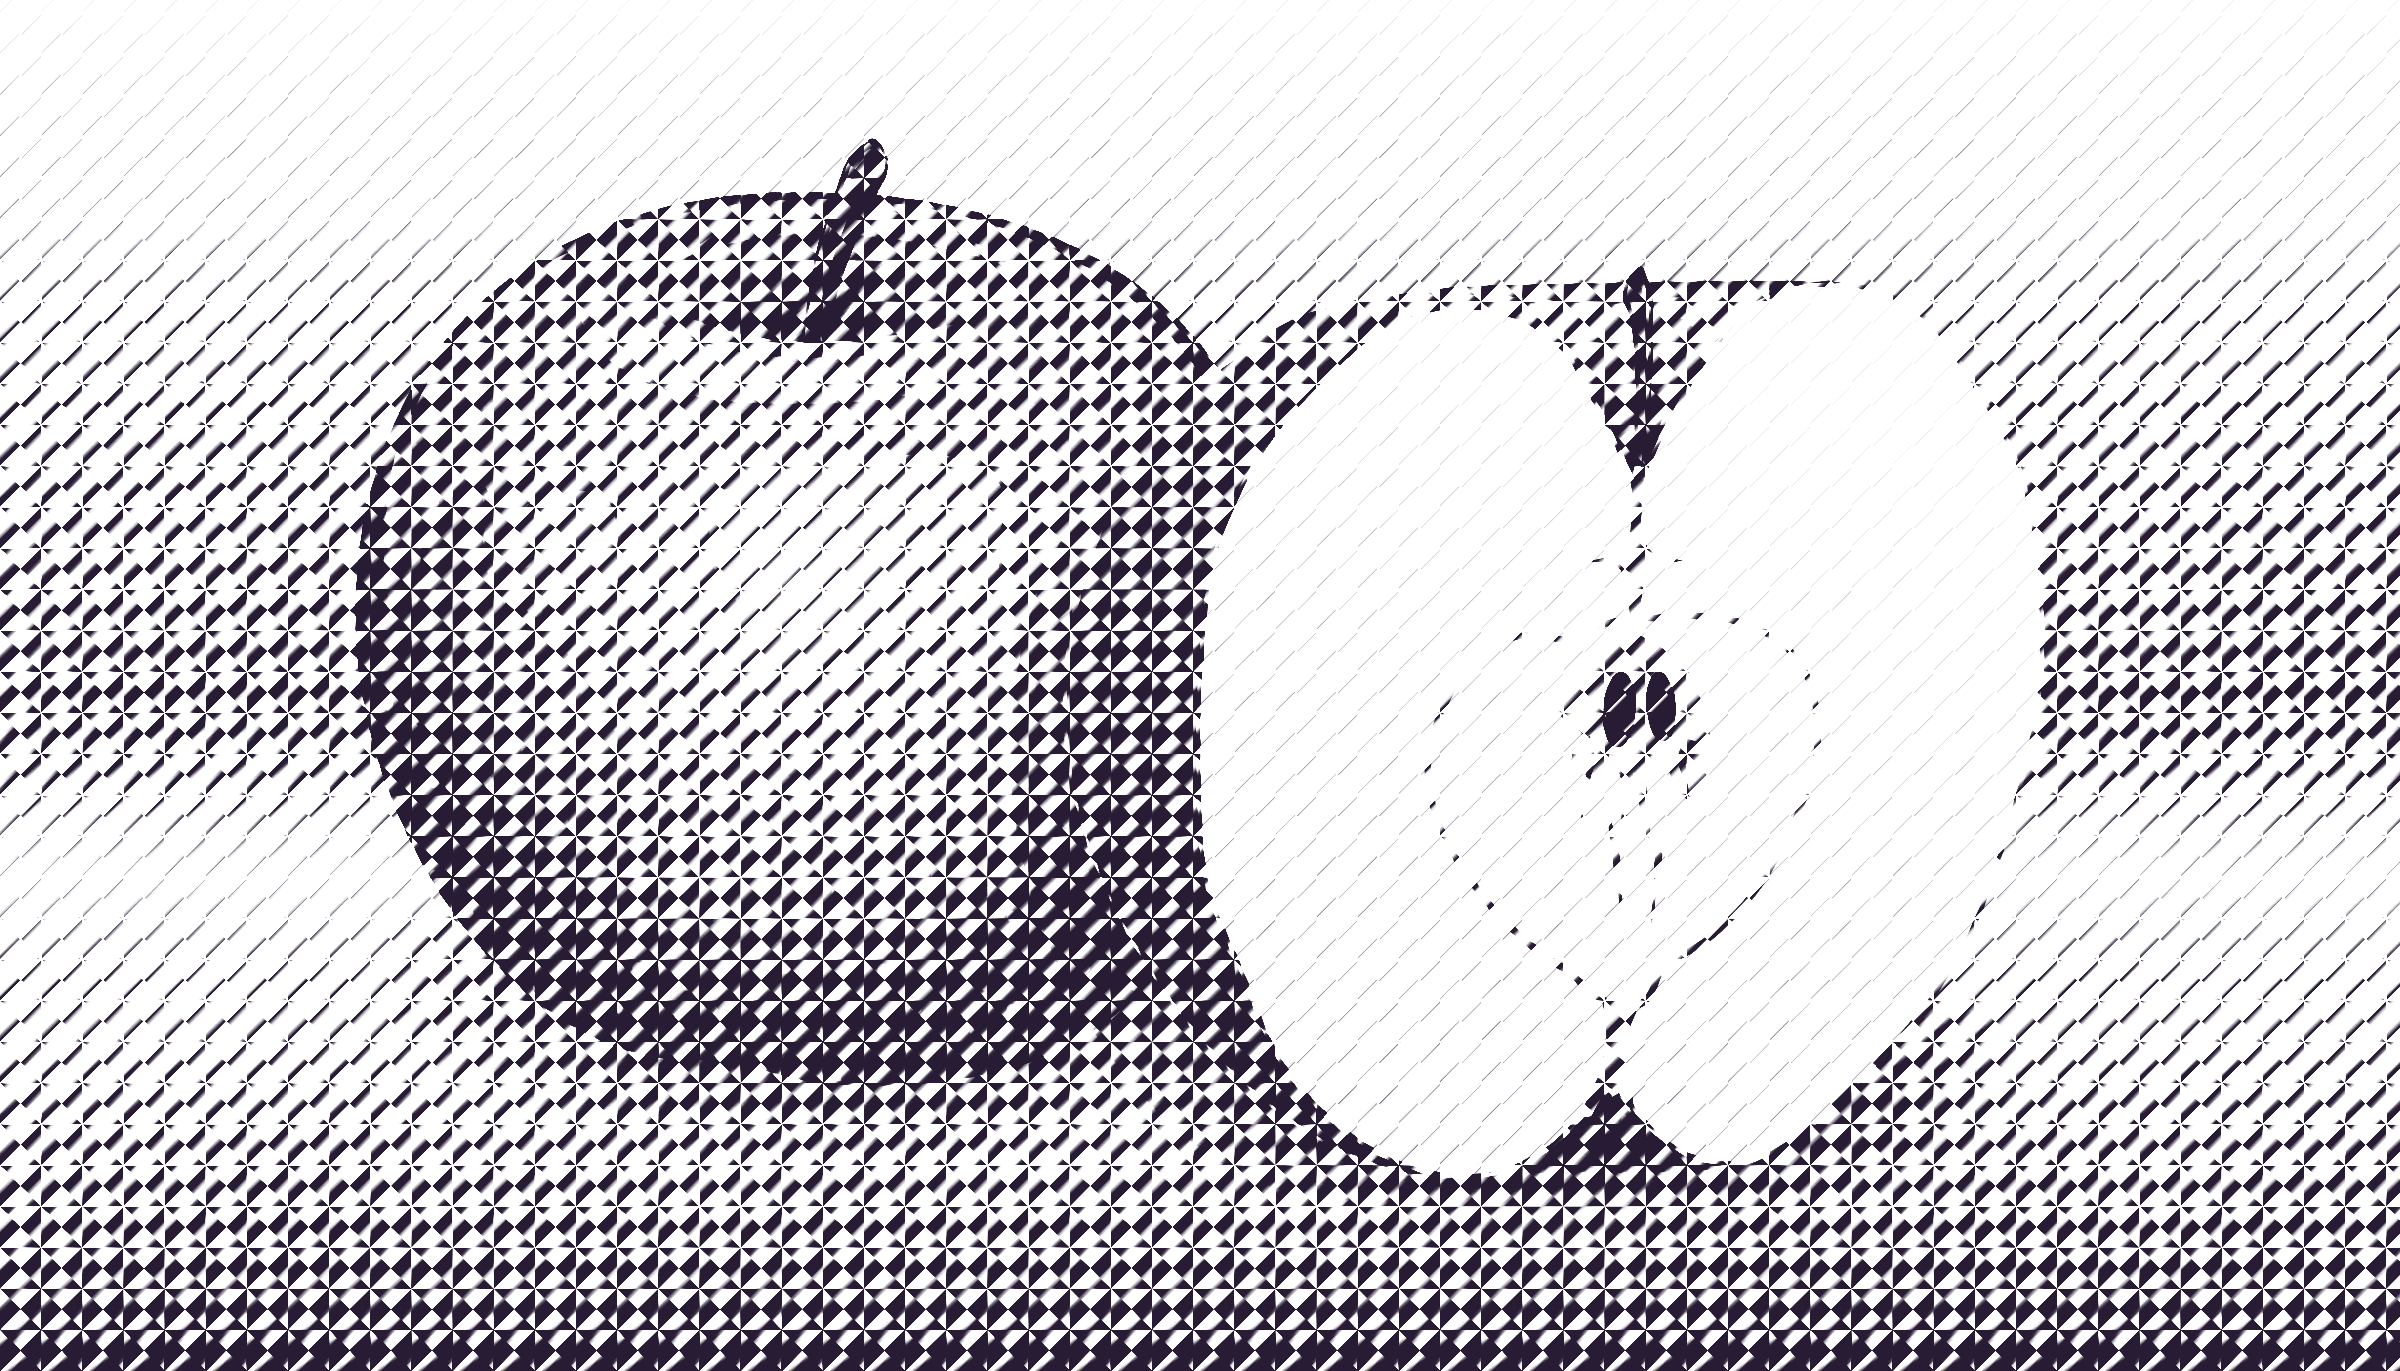 halftone apple 10 by Lazur URH